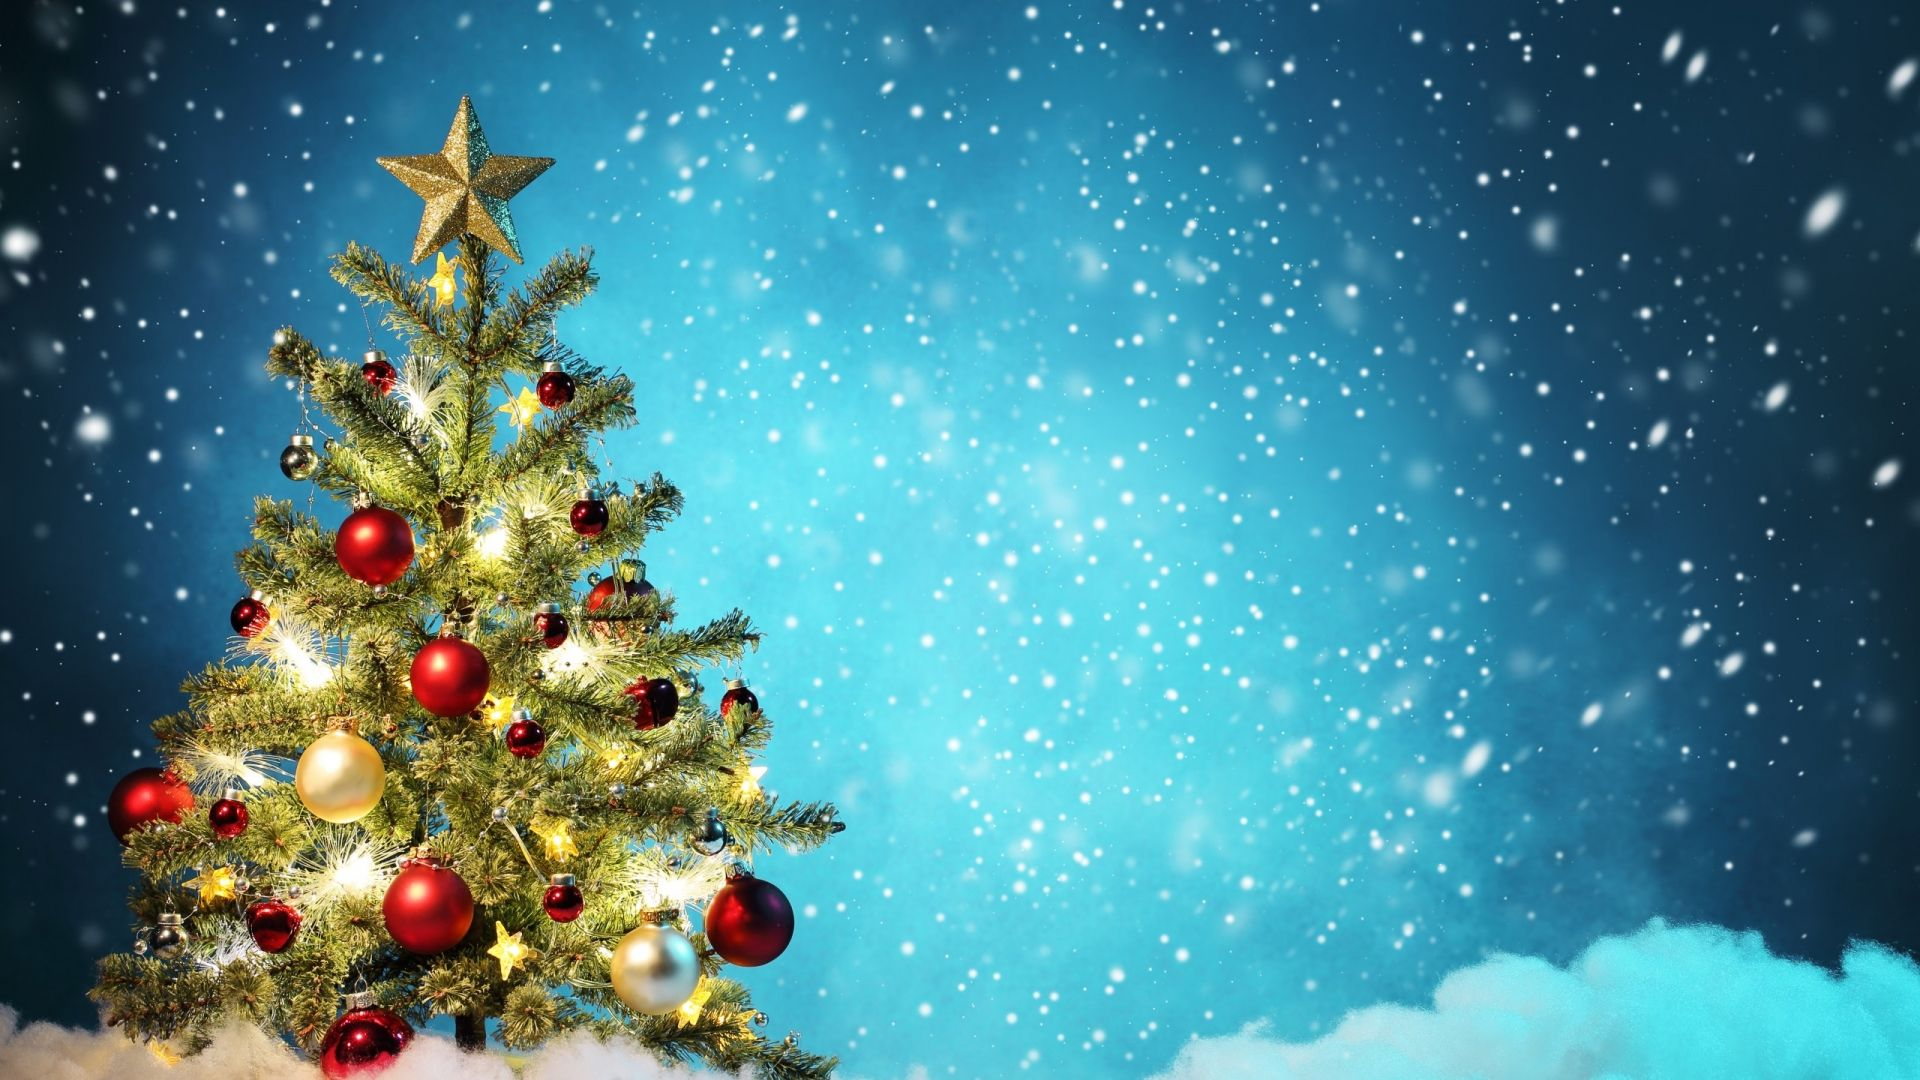 Christmas Tree HD Wallpapers 2015 Free Download